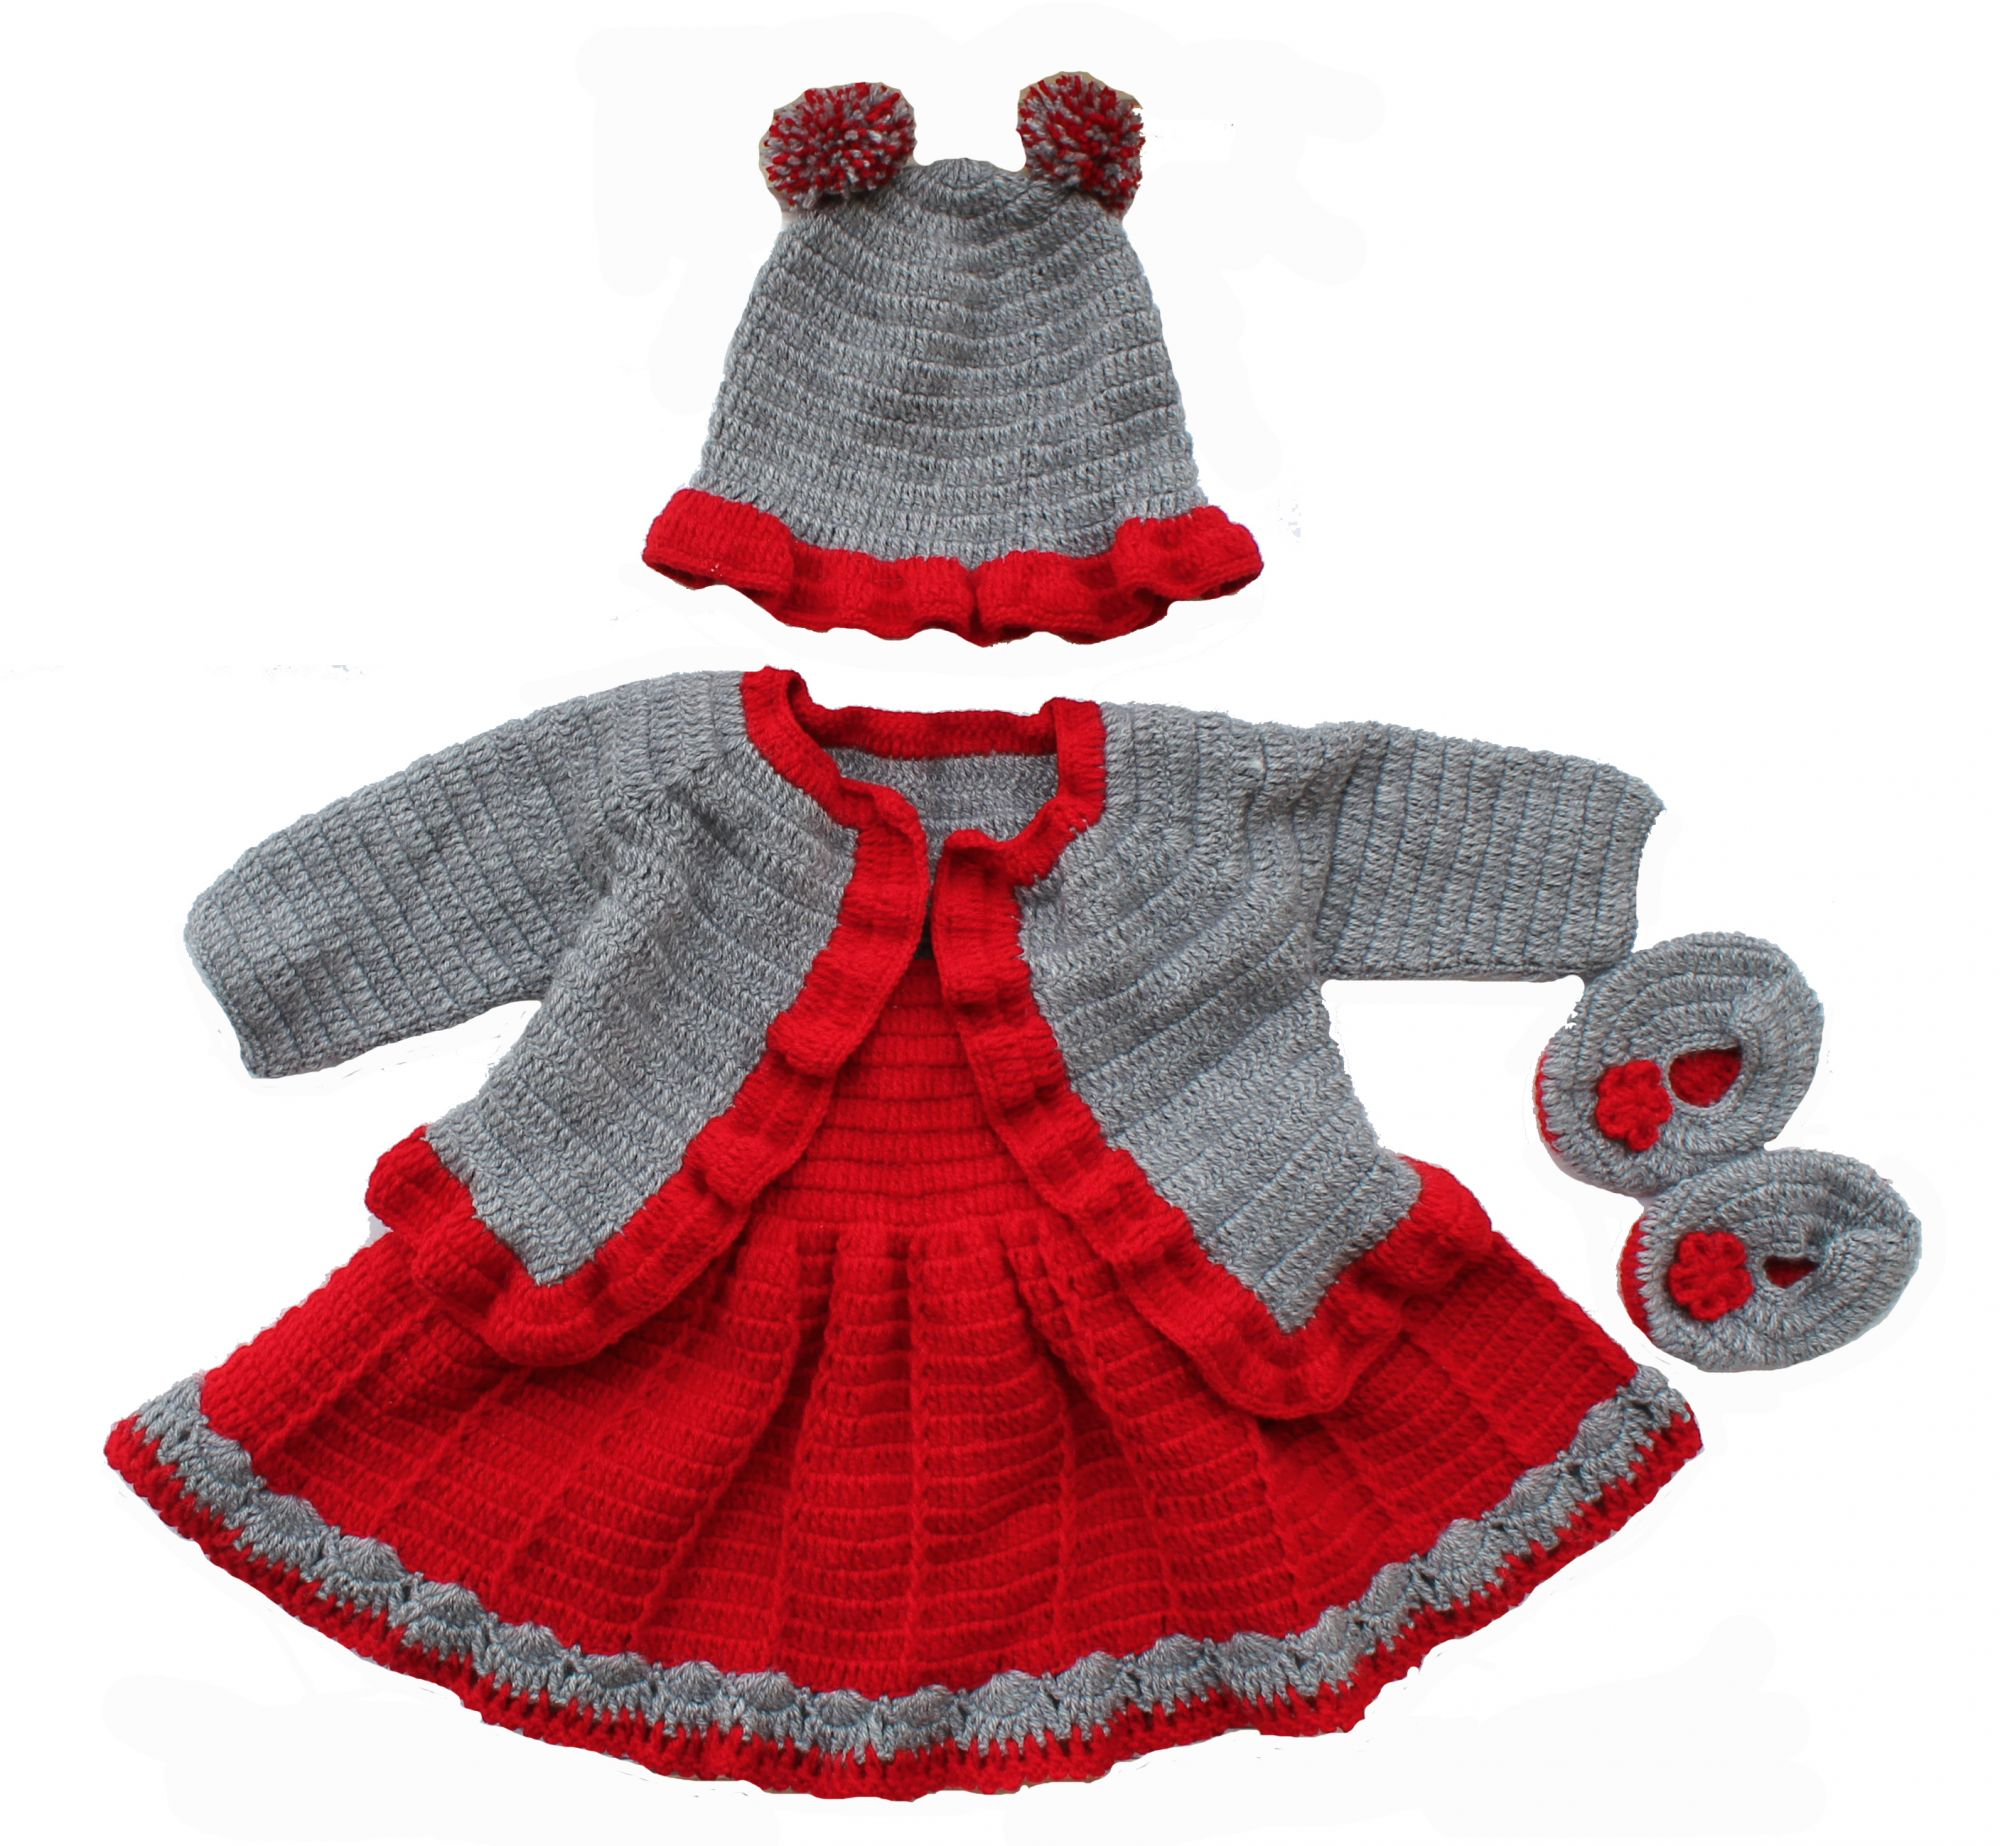 Woonie Handmade Woolen Grey and Red Frock with Shrug Set with Matching Cap and Booties